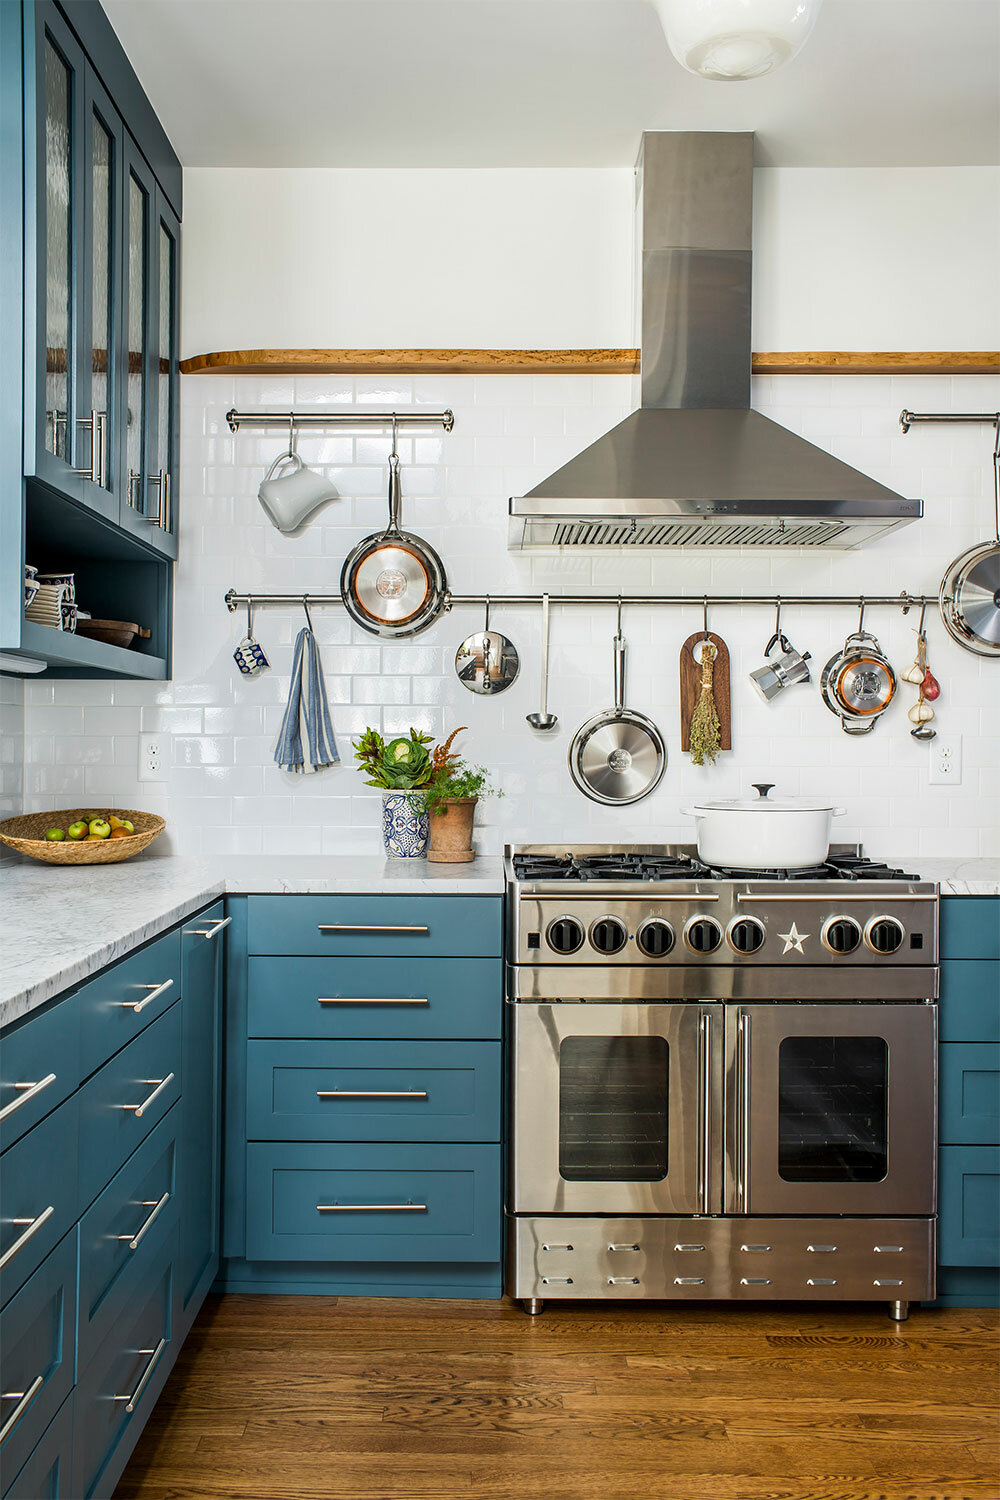 10 Kitchen Tile Ideas You Ll Want To Copy Asap With Photos Wayfair